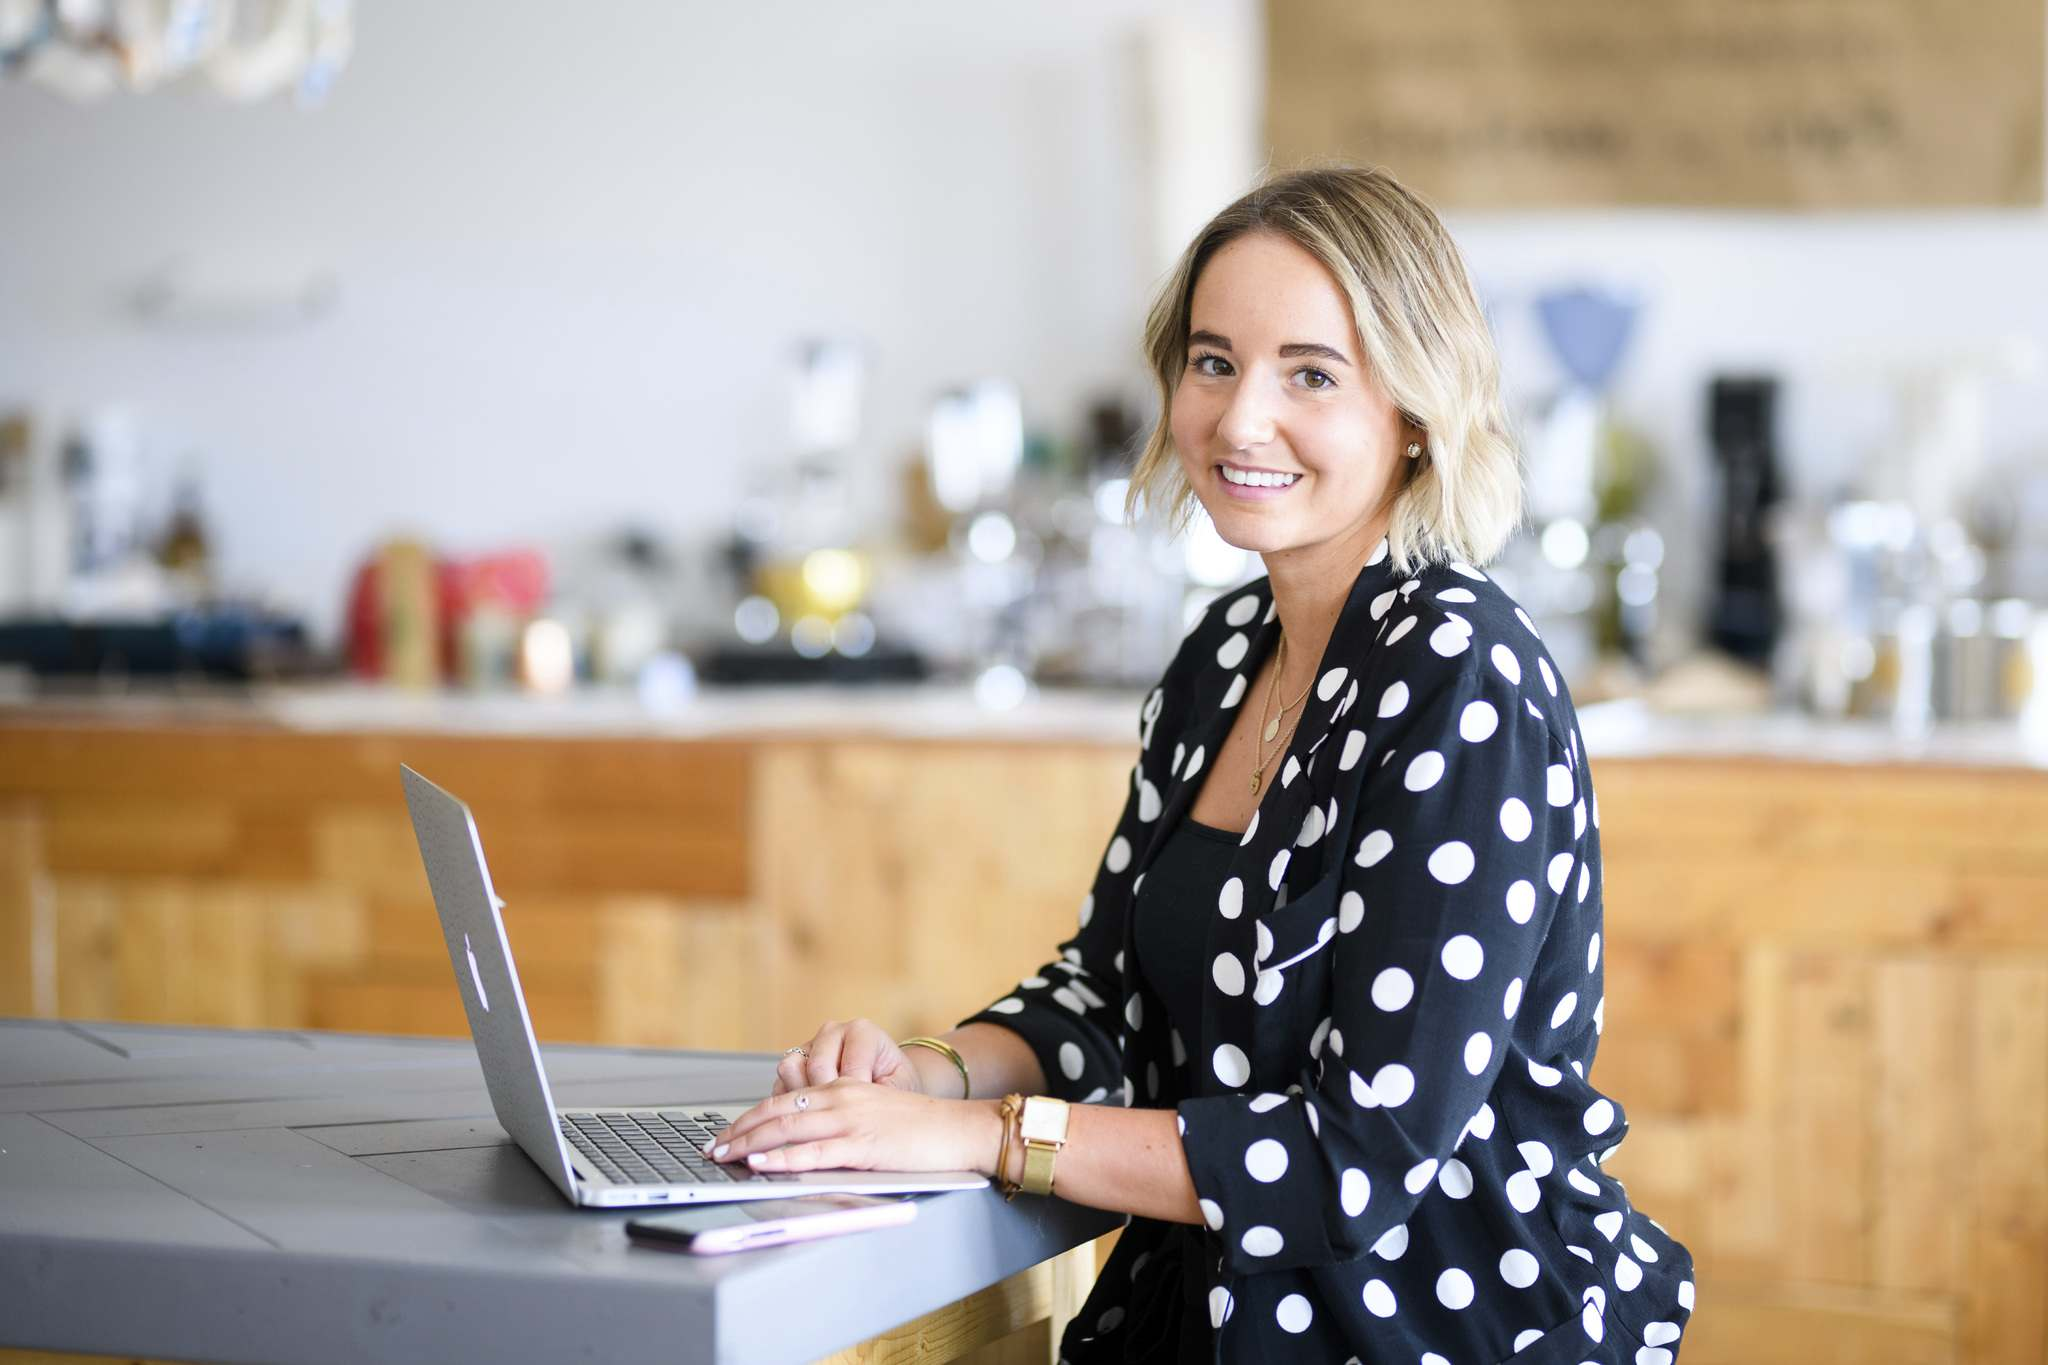 Mike Sudoma / Winnipeg Free Press</p><p>Cassidy Coutts juggles her passion for being an Instagram influencer with a full-time marketing job during the day. She runs both an Instagram page as well as a blog website for followers to keep up to date with her social media content.</p>